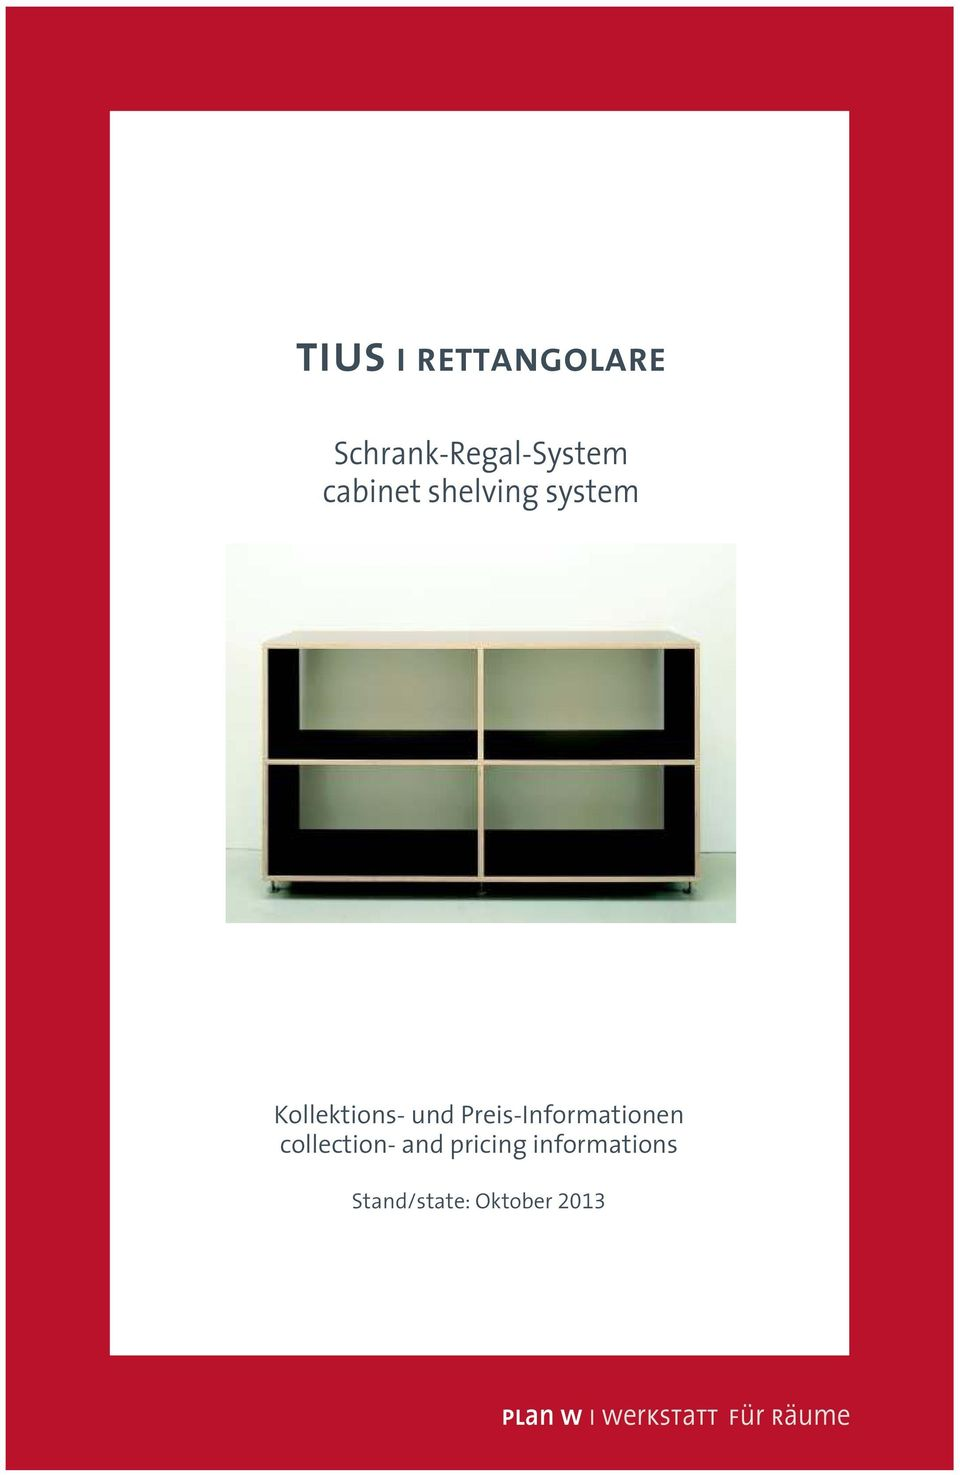 und Preis-Informationen collection- and